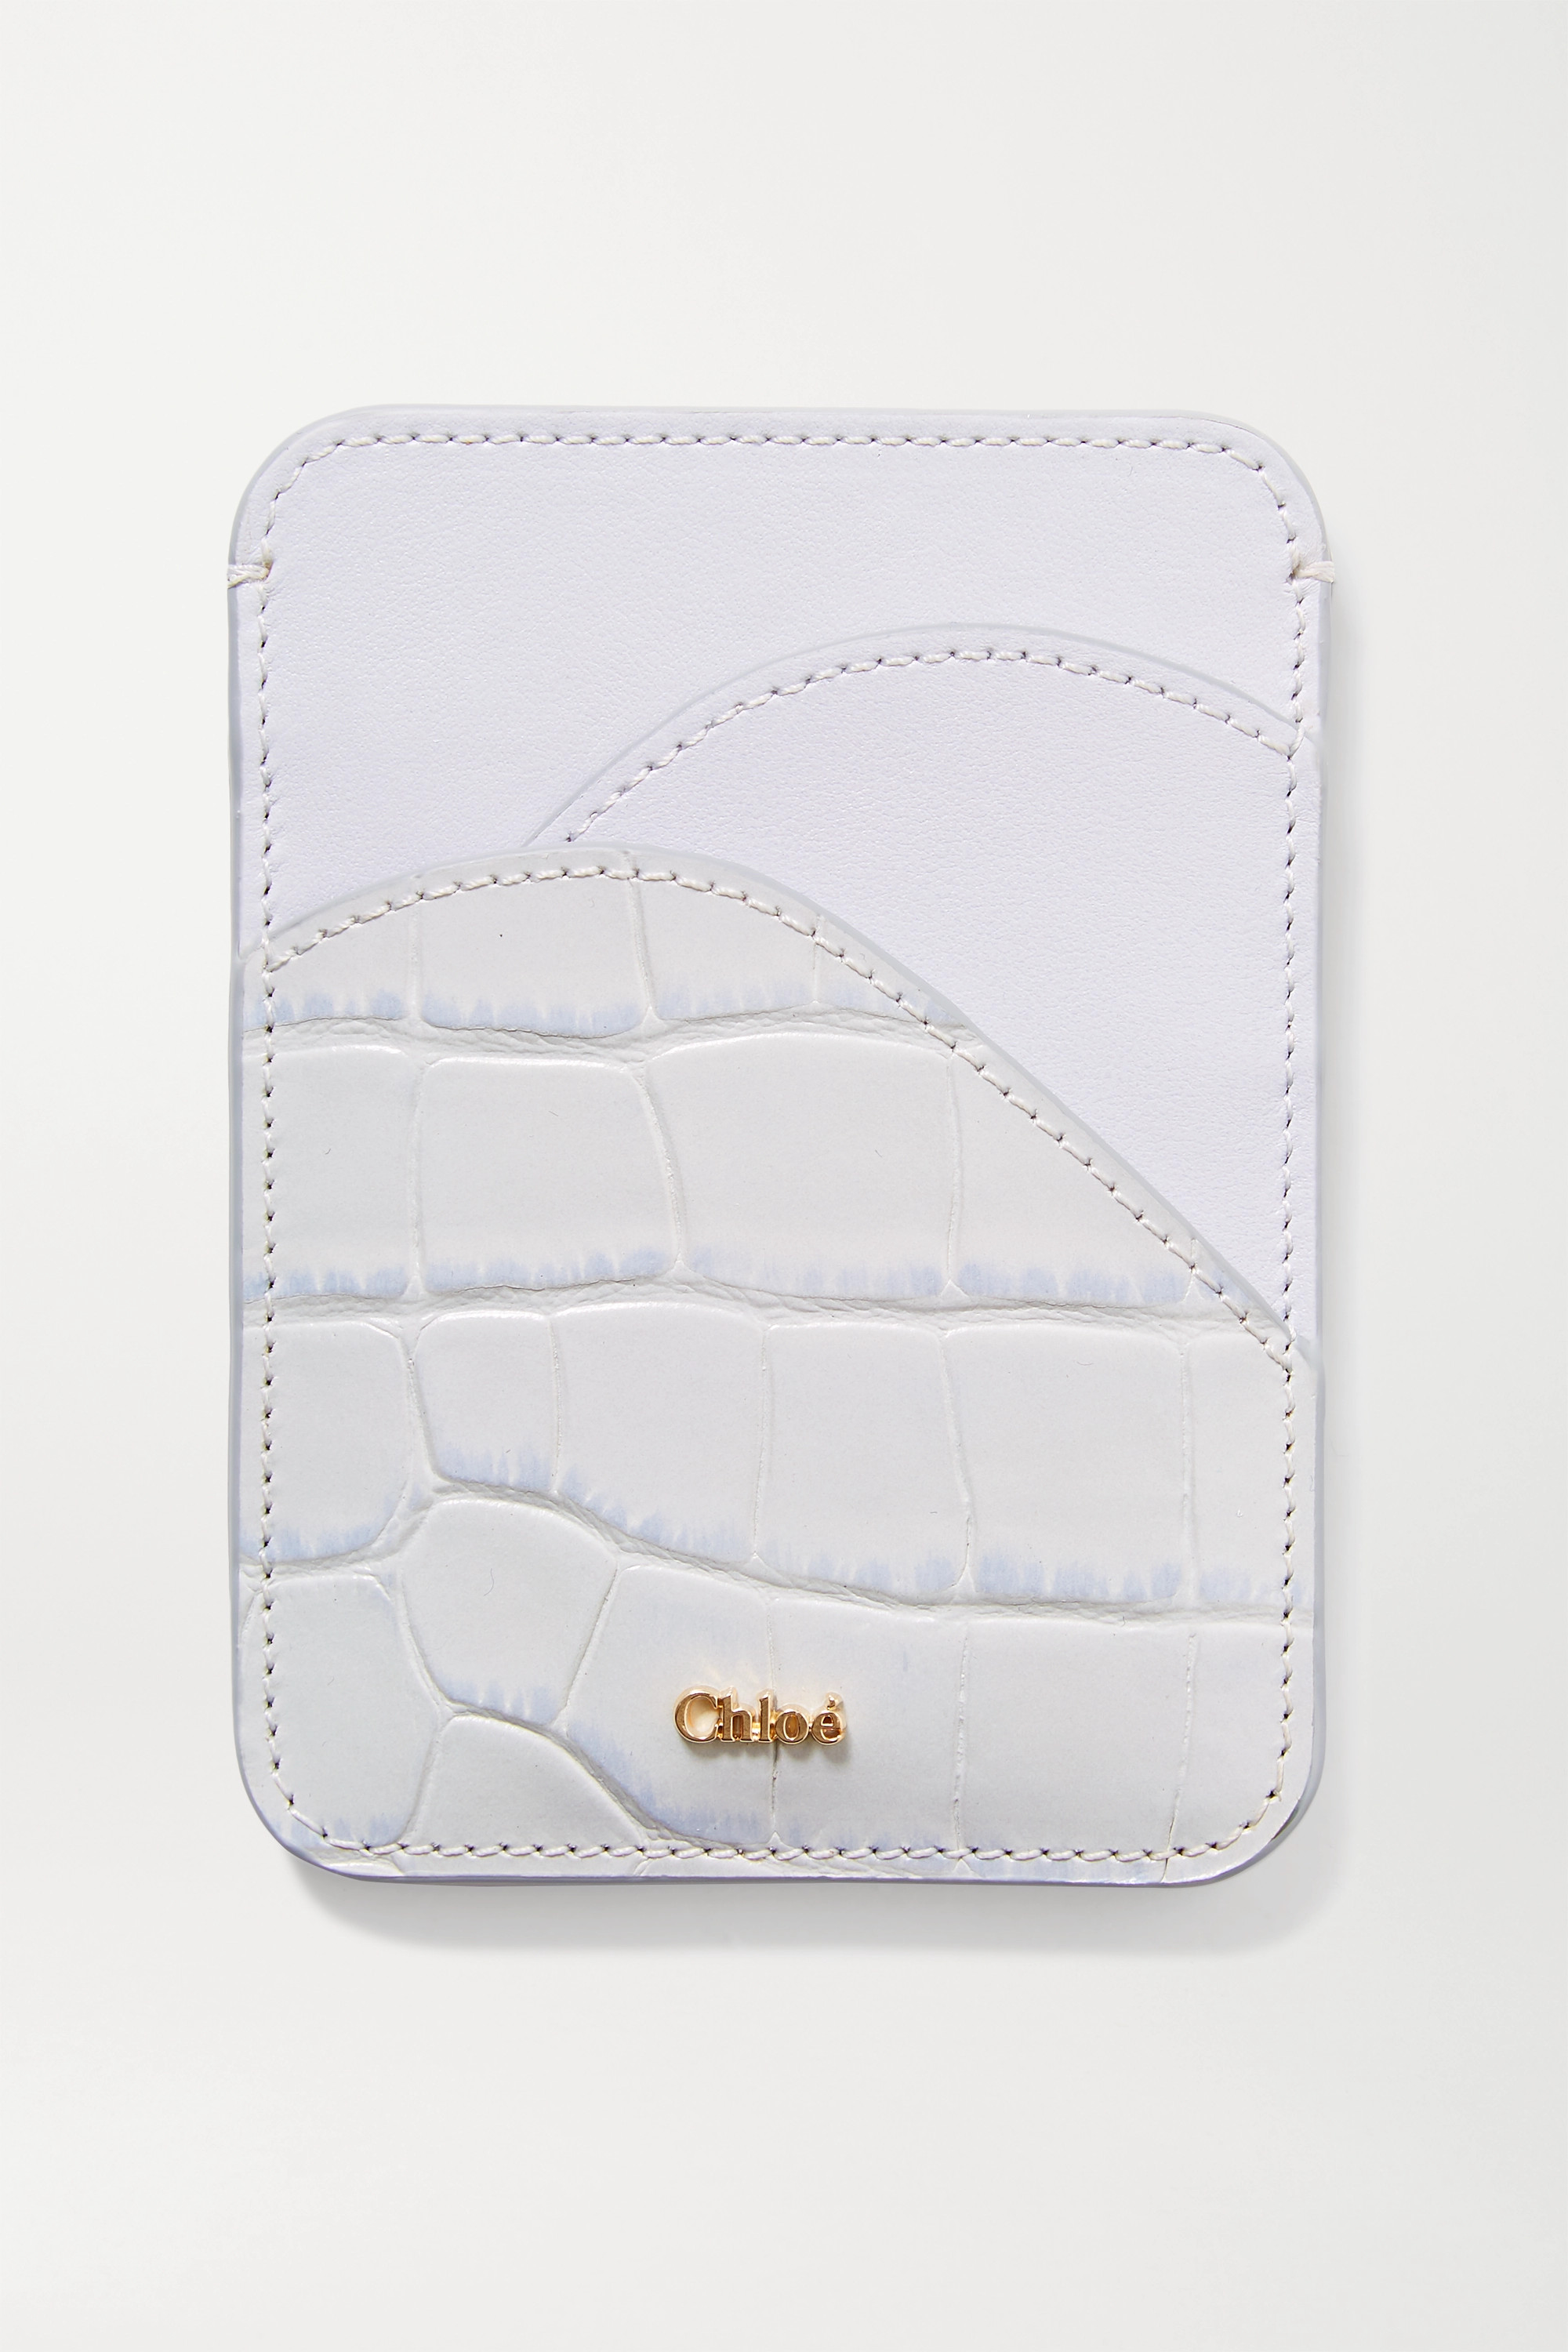 Chloé Walden smooth and croc-effect leather cardholder